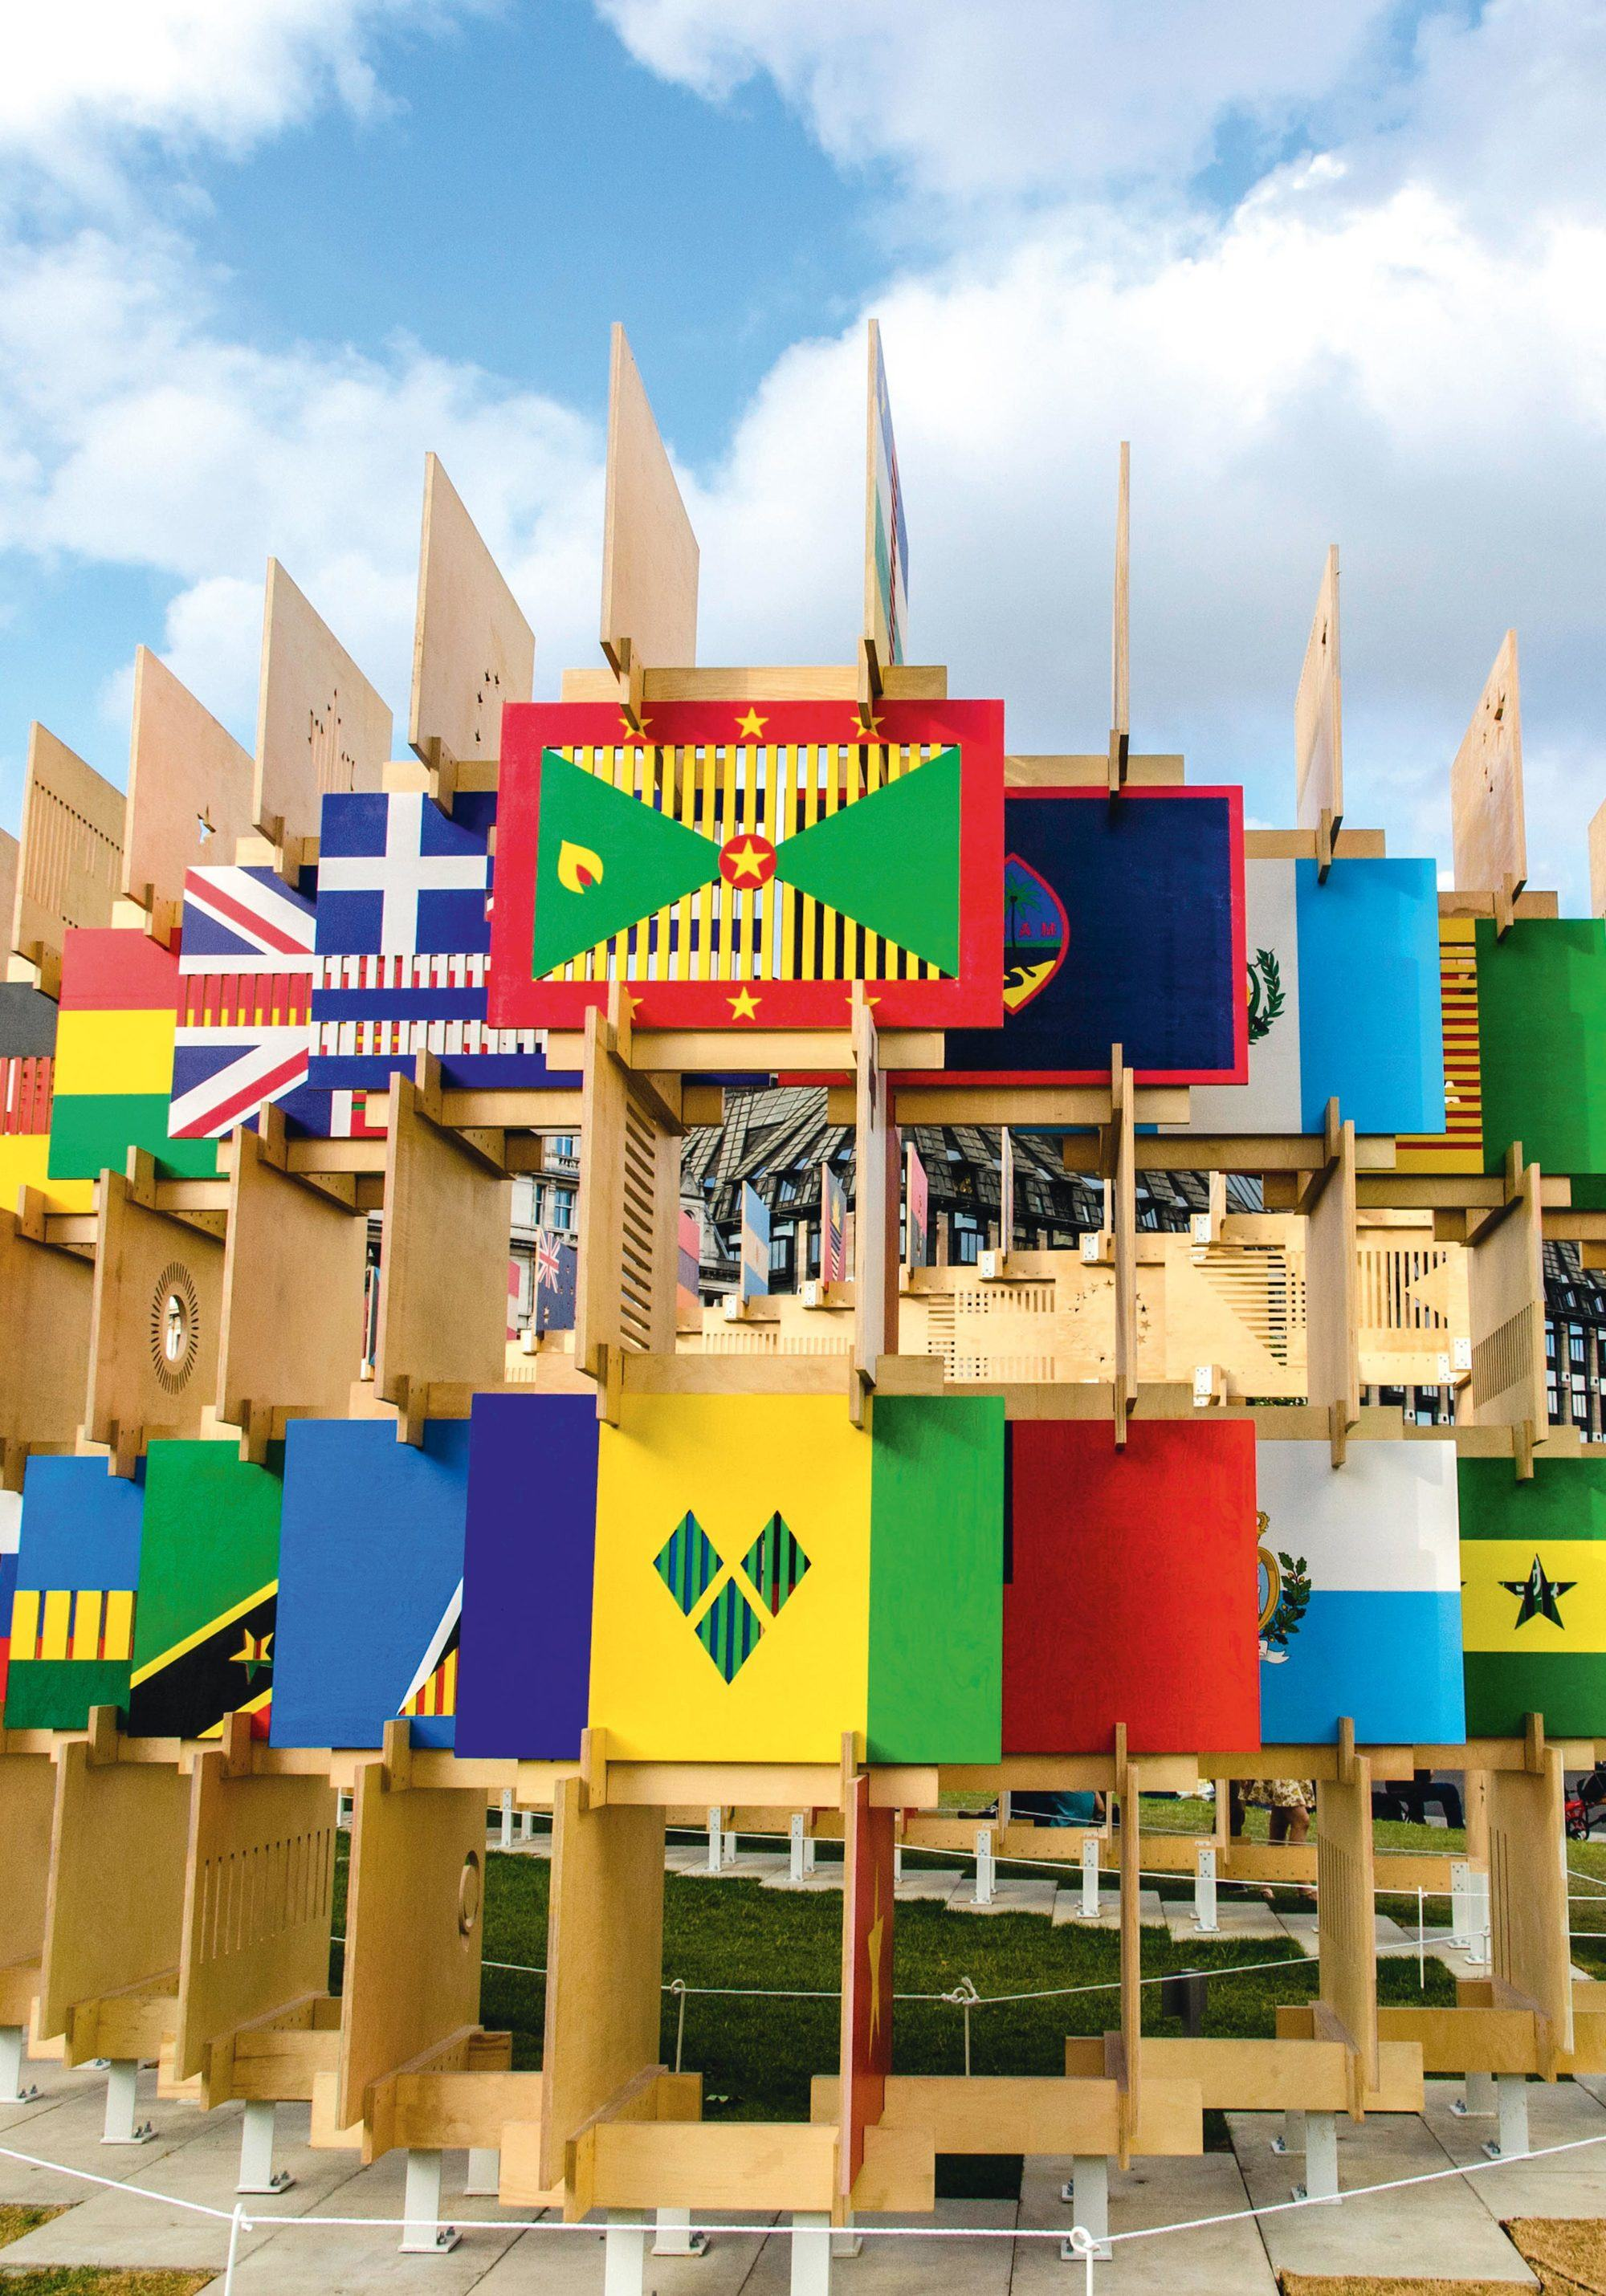 House of Flags